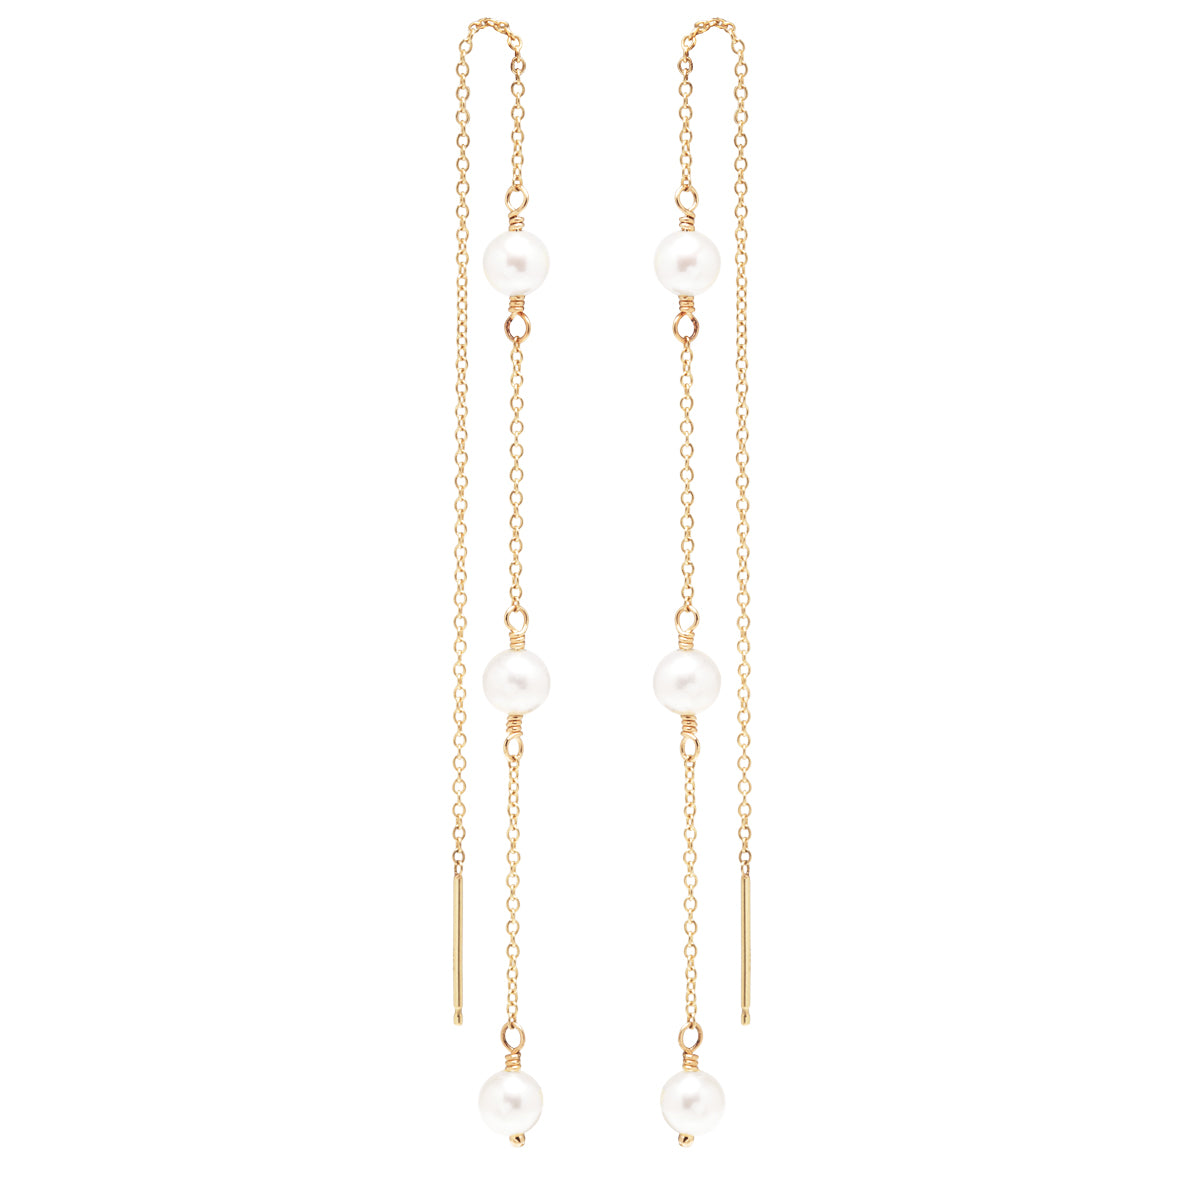 14k cable chain threader earrings with 3 pearls